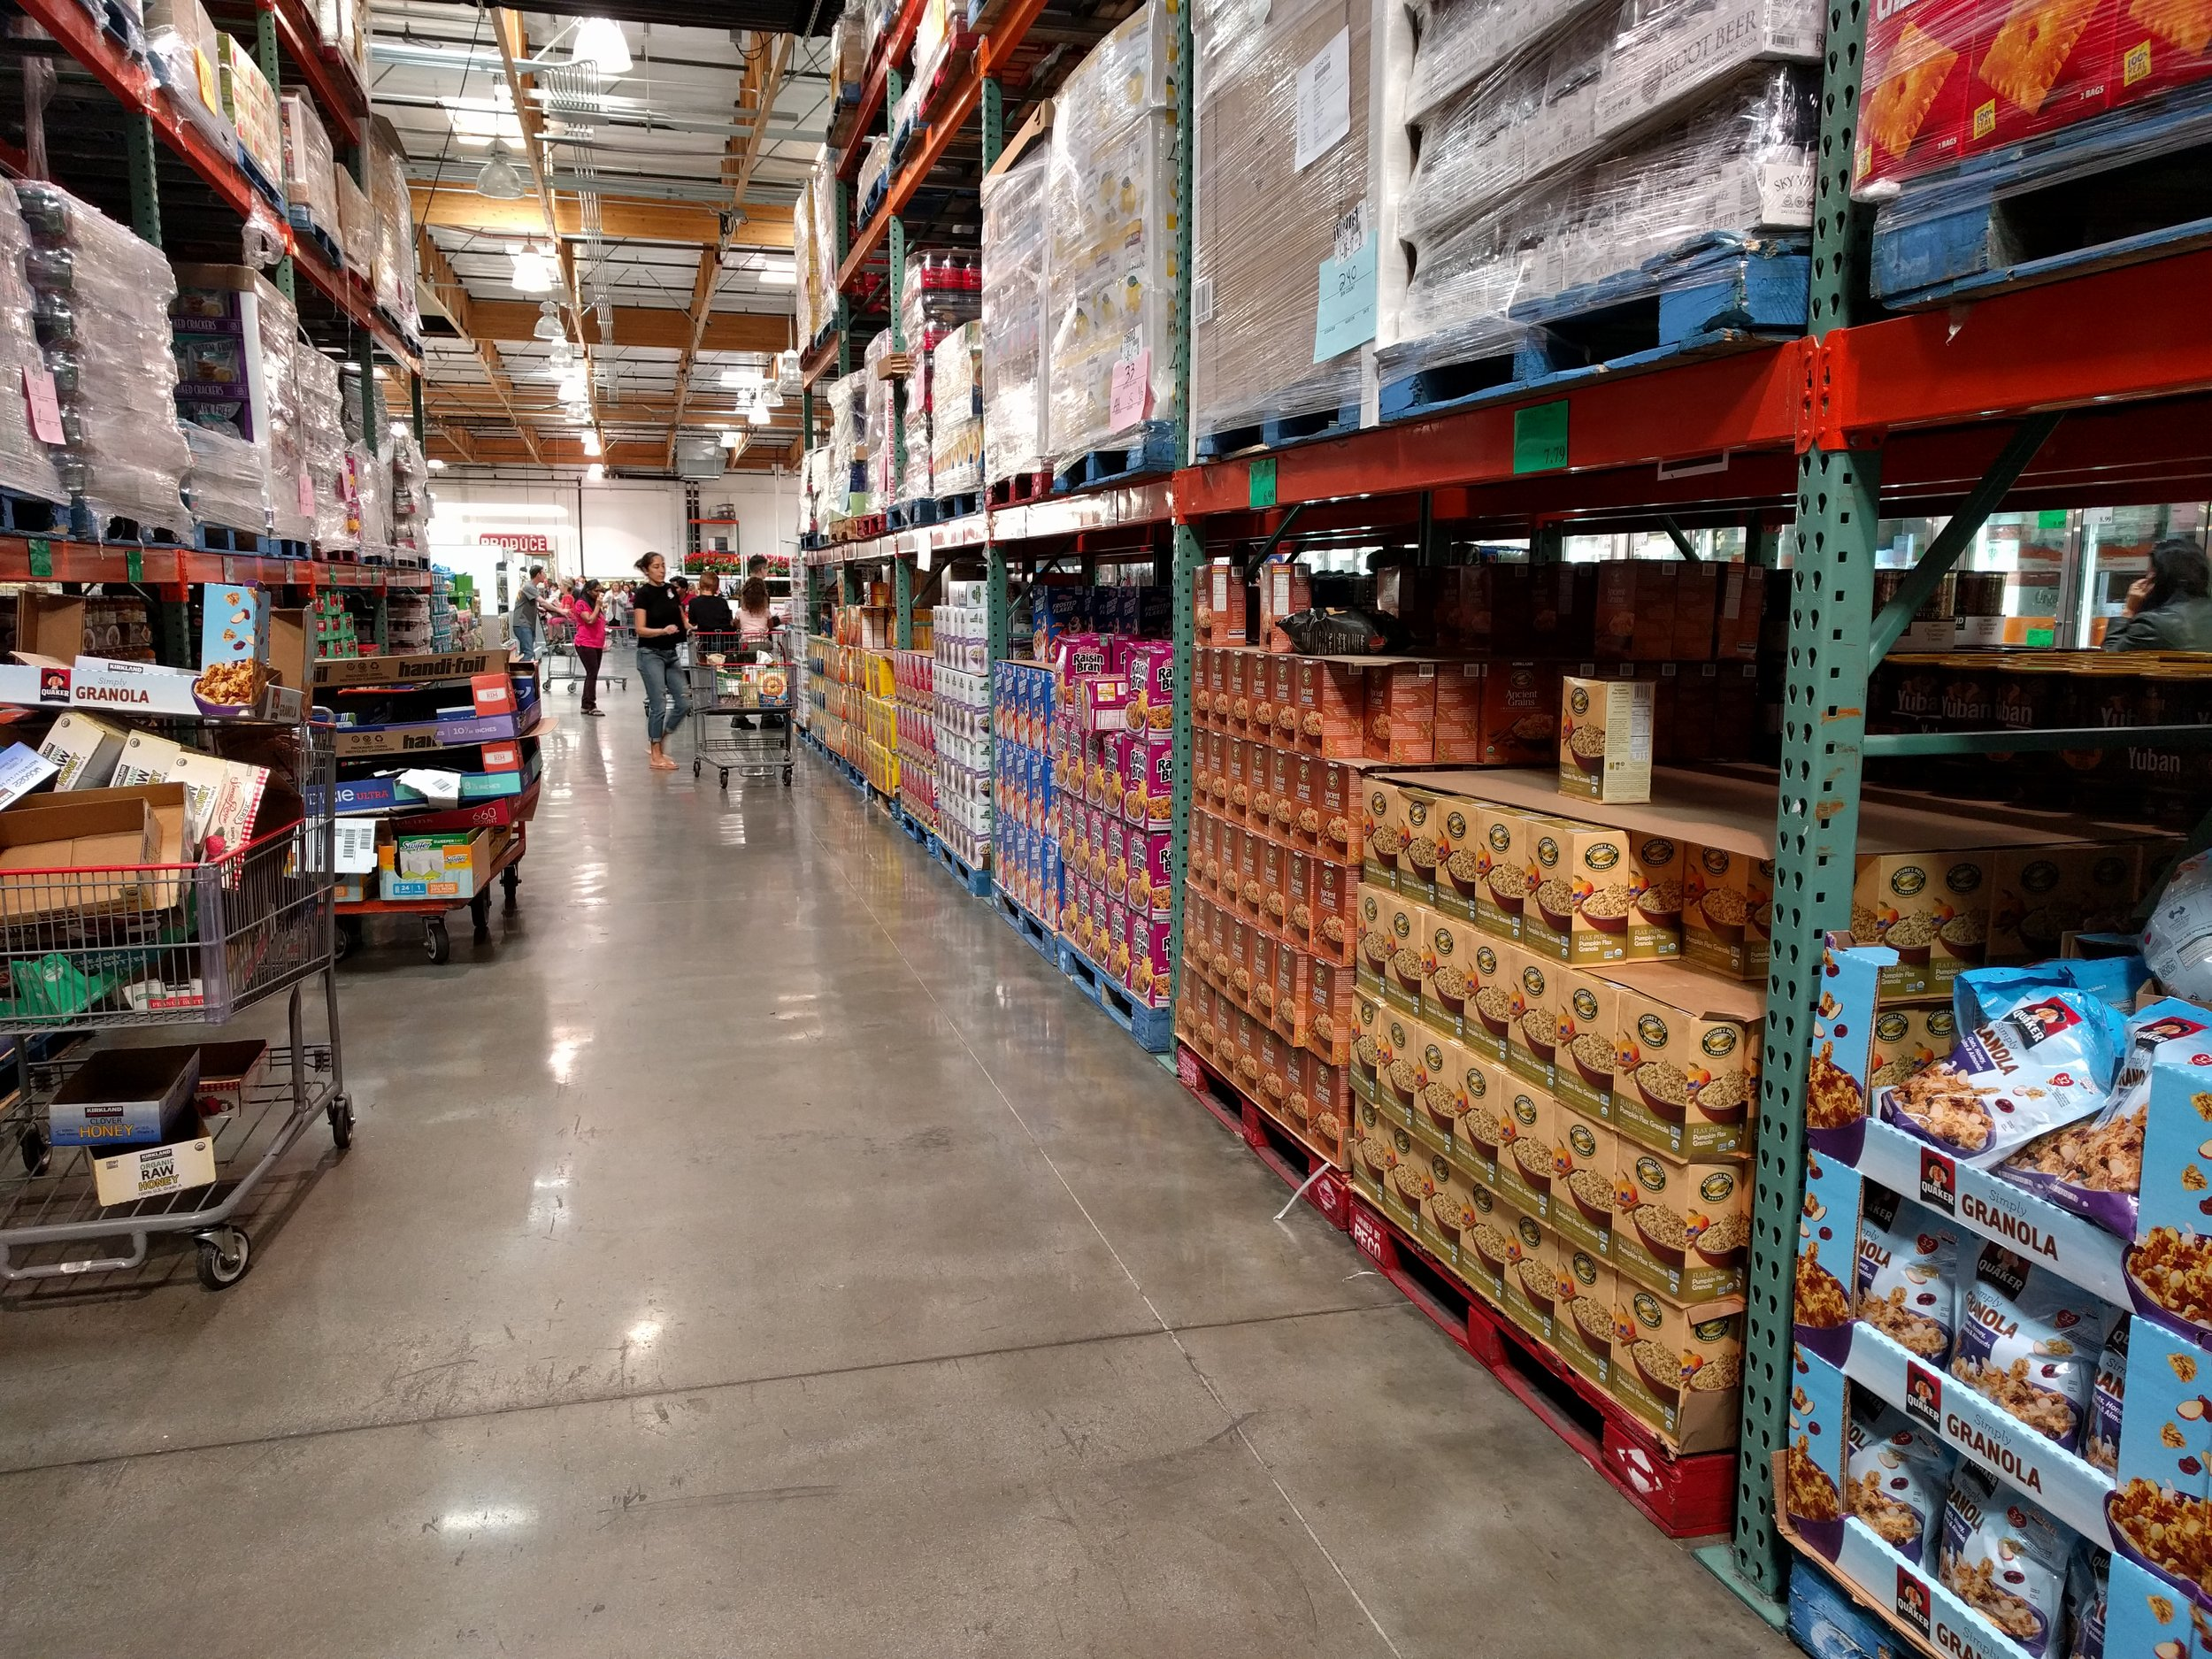 My daughter was overwhelmed at the aisles filled from floor to ceiling with food.